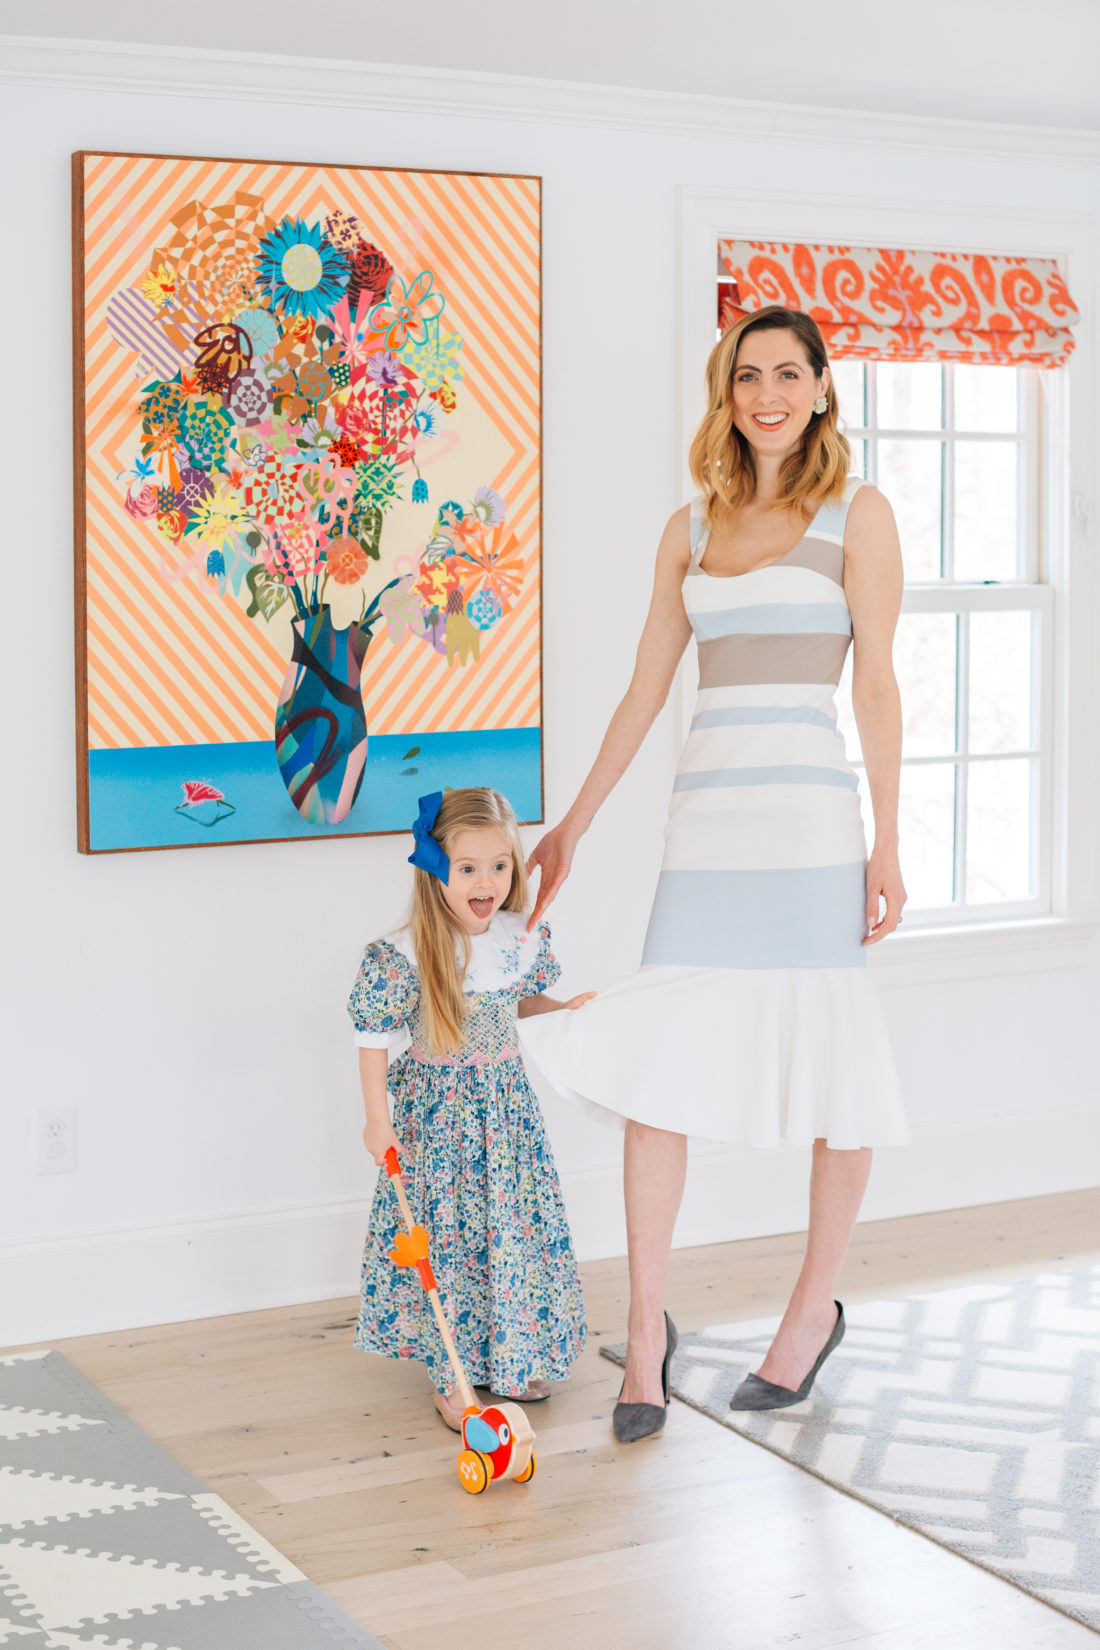 Eva Amurri Martino wears a striped Spring dress and stands with her three year old daughter who wears a floral dress with smocking for Easter